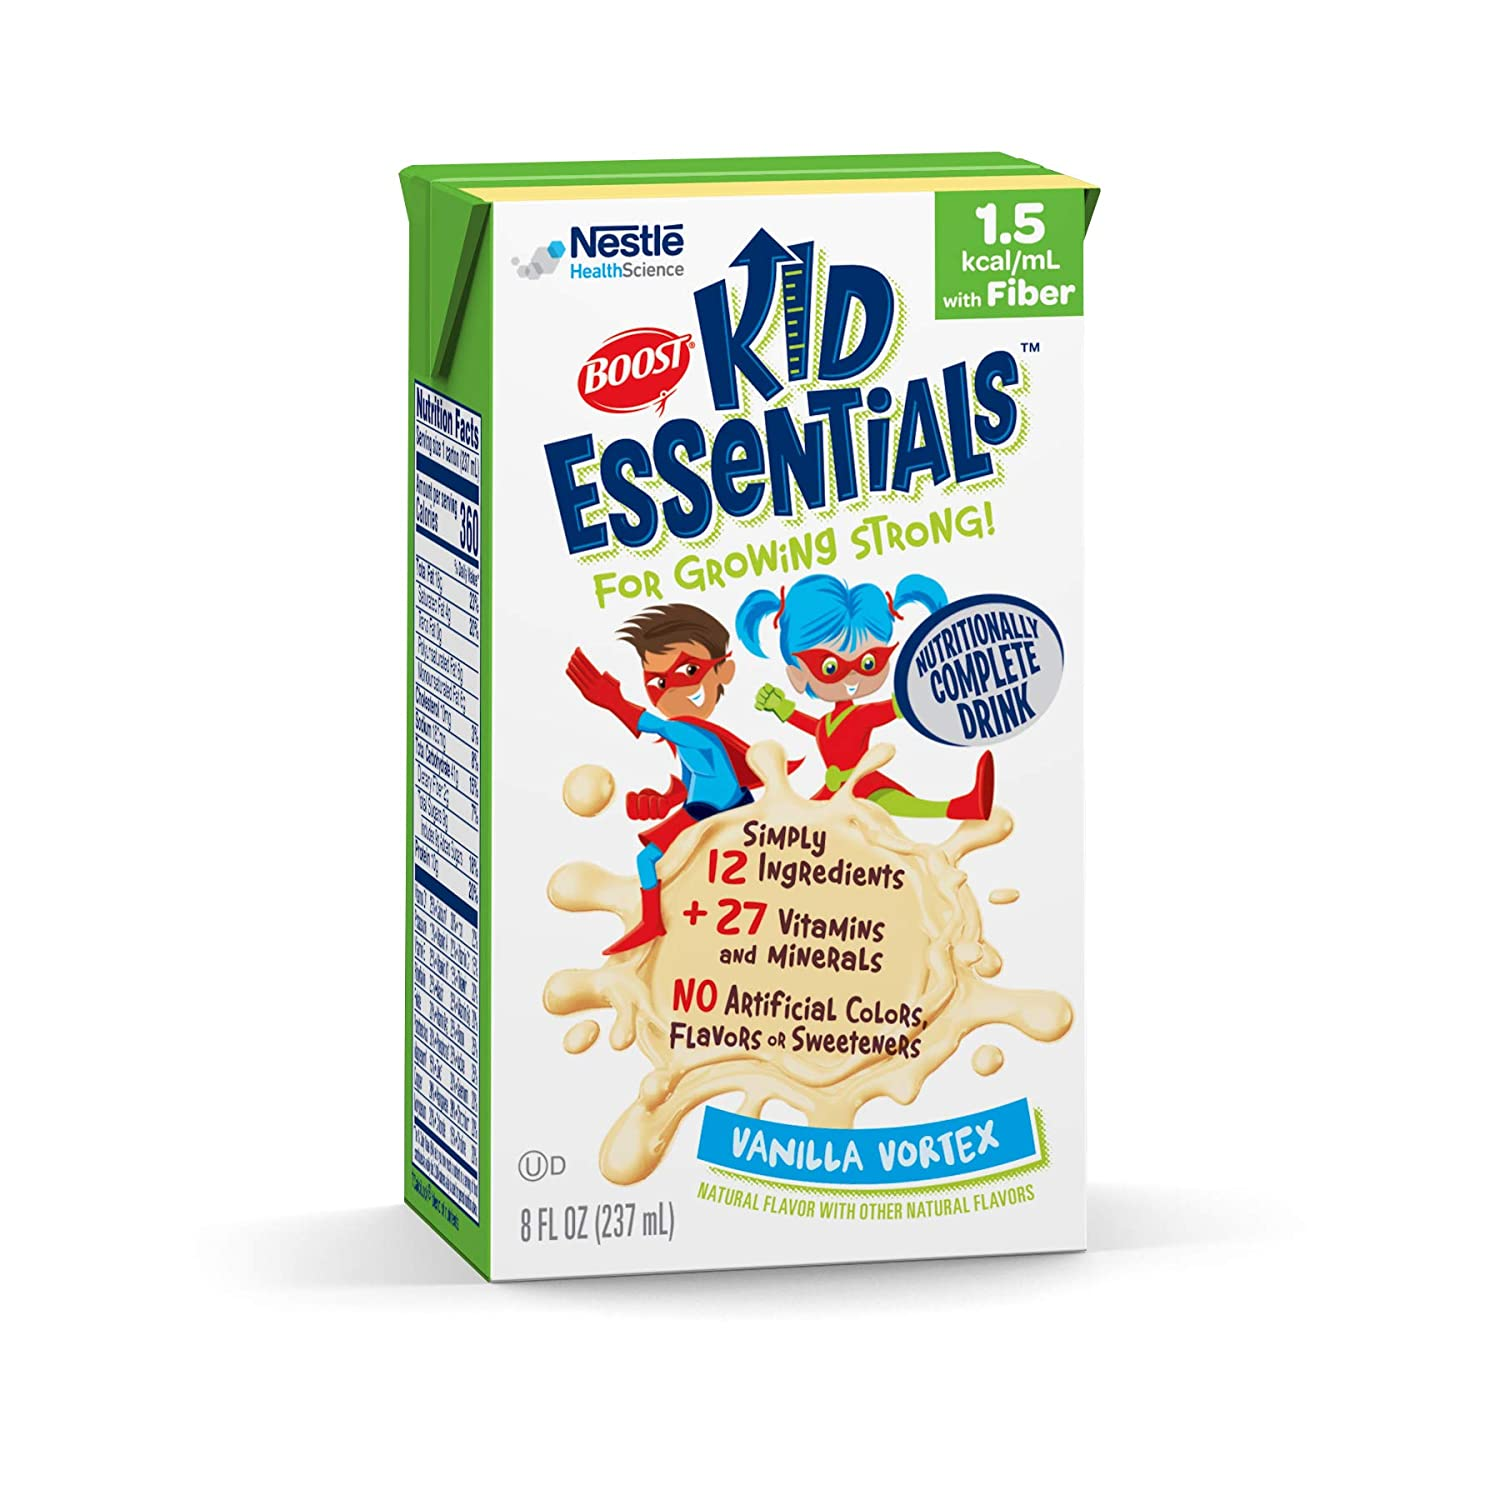 B001W6RGRQ Boost Kid Essentials 1.5 Nutritionally Complete Drink with Fiber, Vanilla, 8 Ounces (Pack of 27) 71PPaU3sVKL